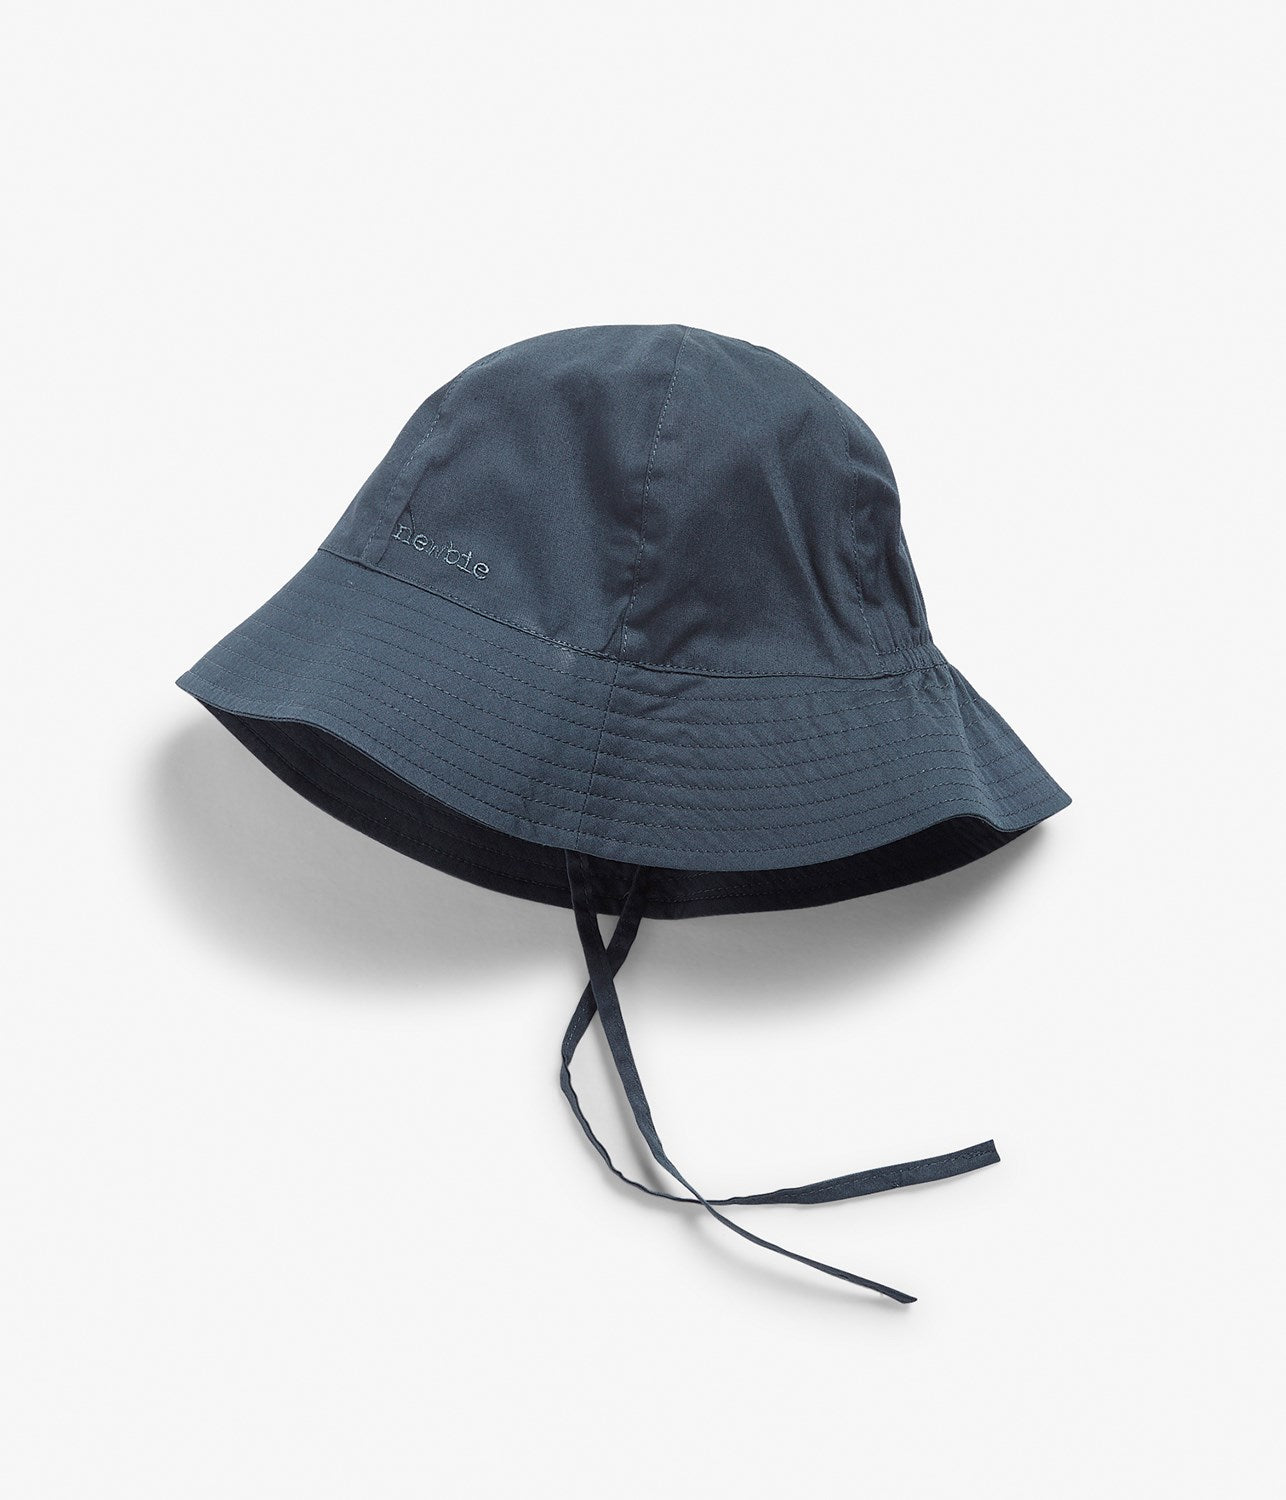 Baby navy blue sun hat